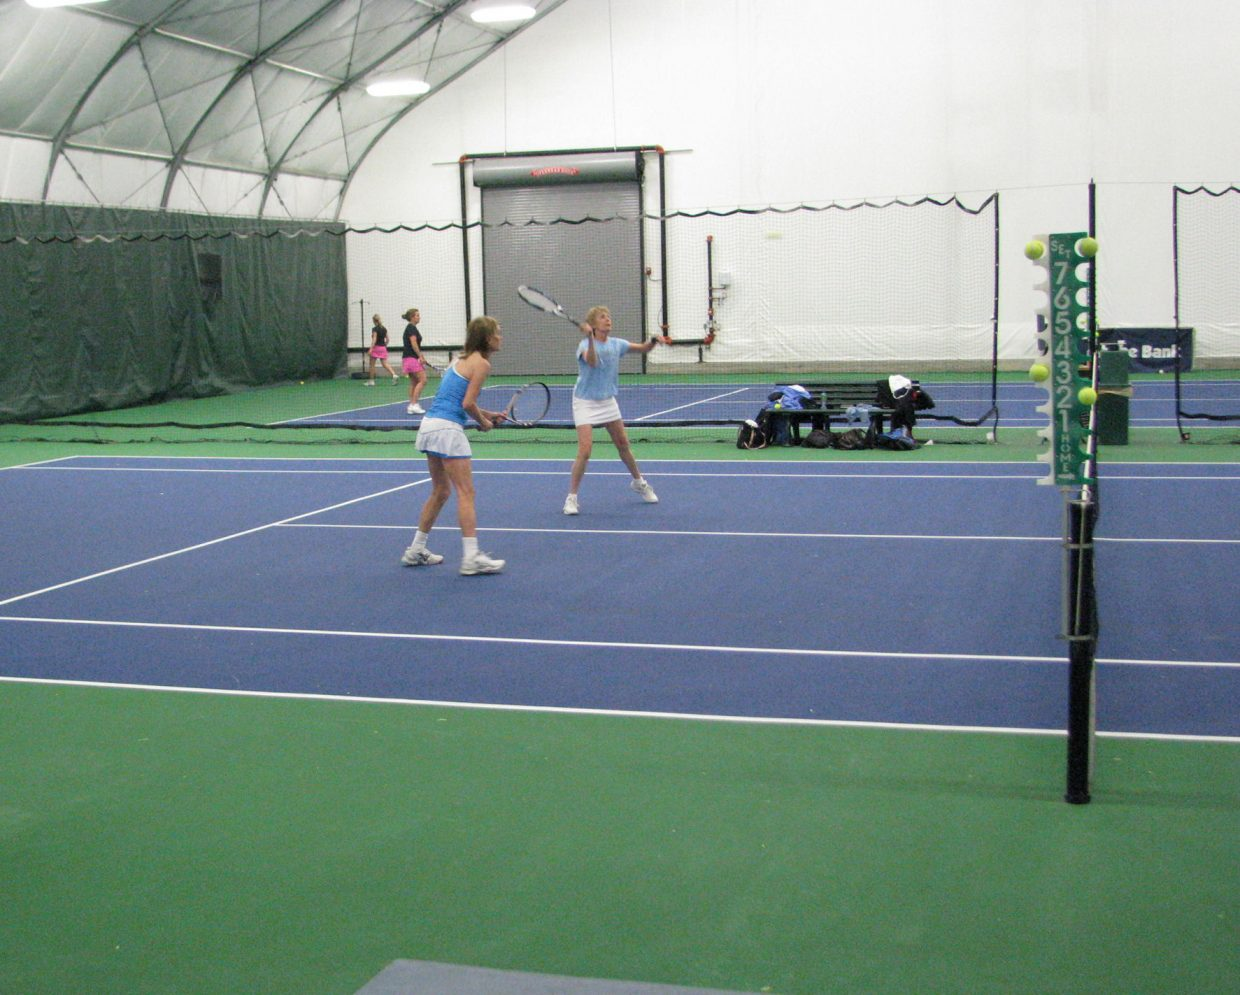 Marion Kahn and Carolyn Krueger play Saturday during the 2011 Steamboat City Singles and Doubles Championships. They lost to Cari Pugh and Patricia O'Brien in the Women's 3.5 Doubles semifinal round.